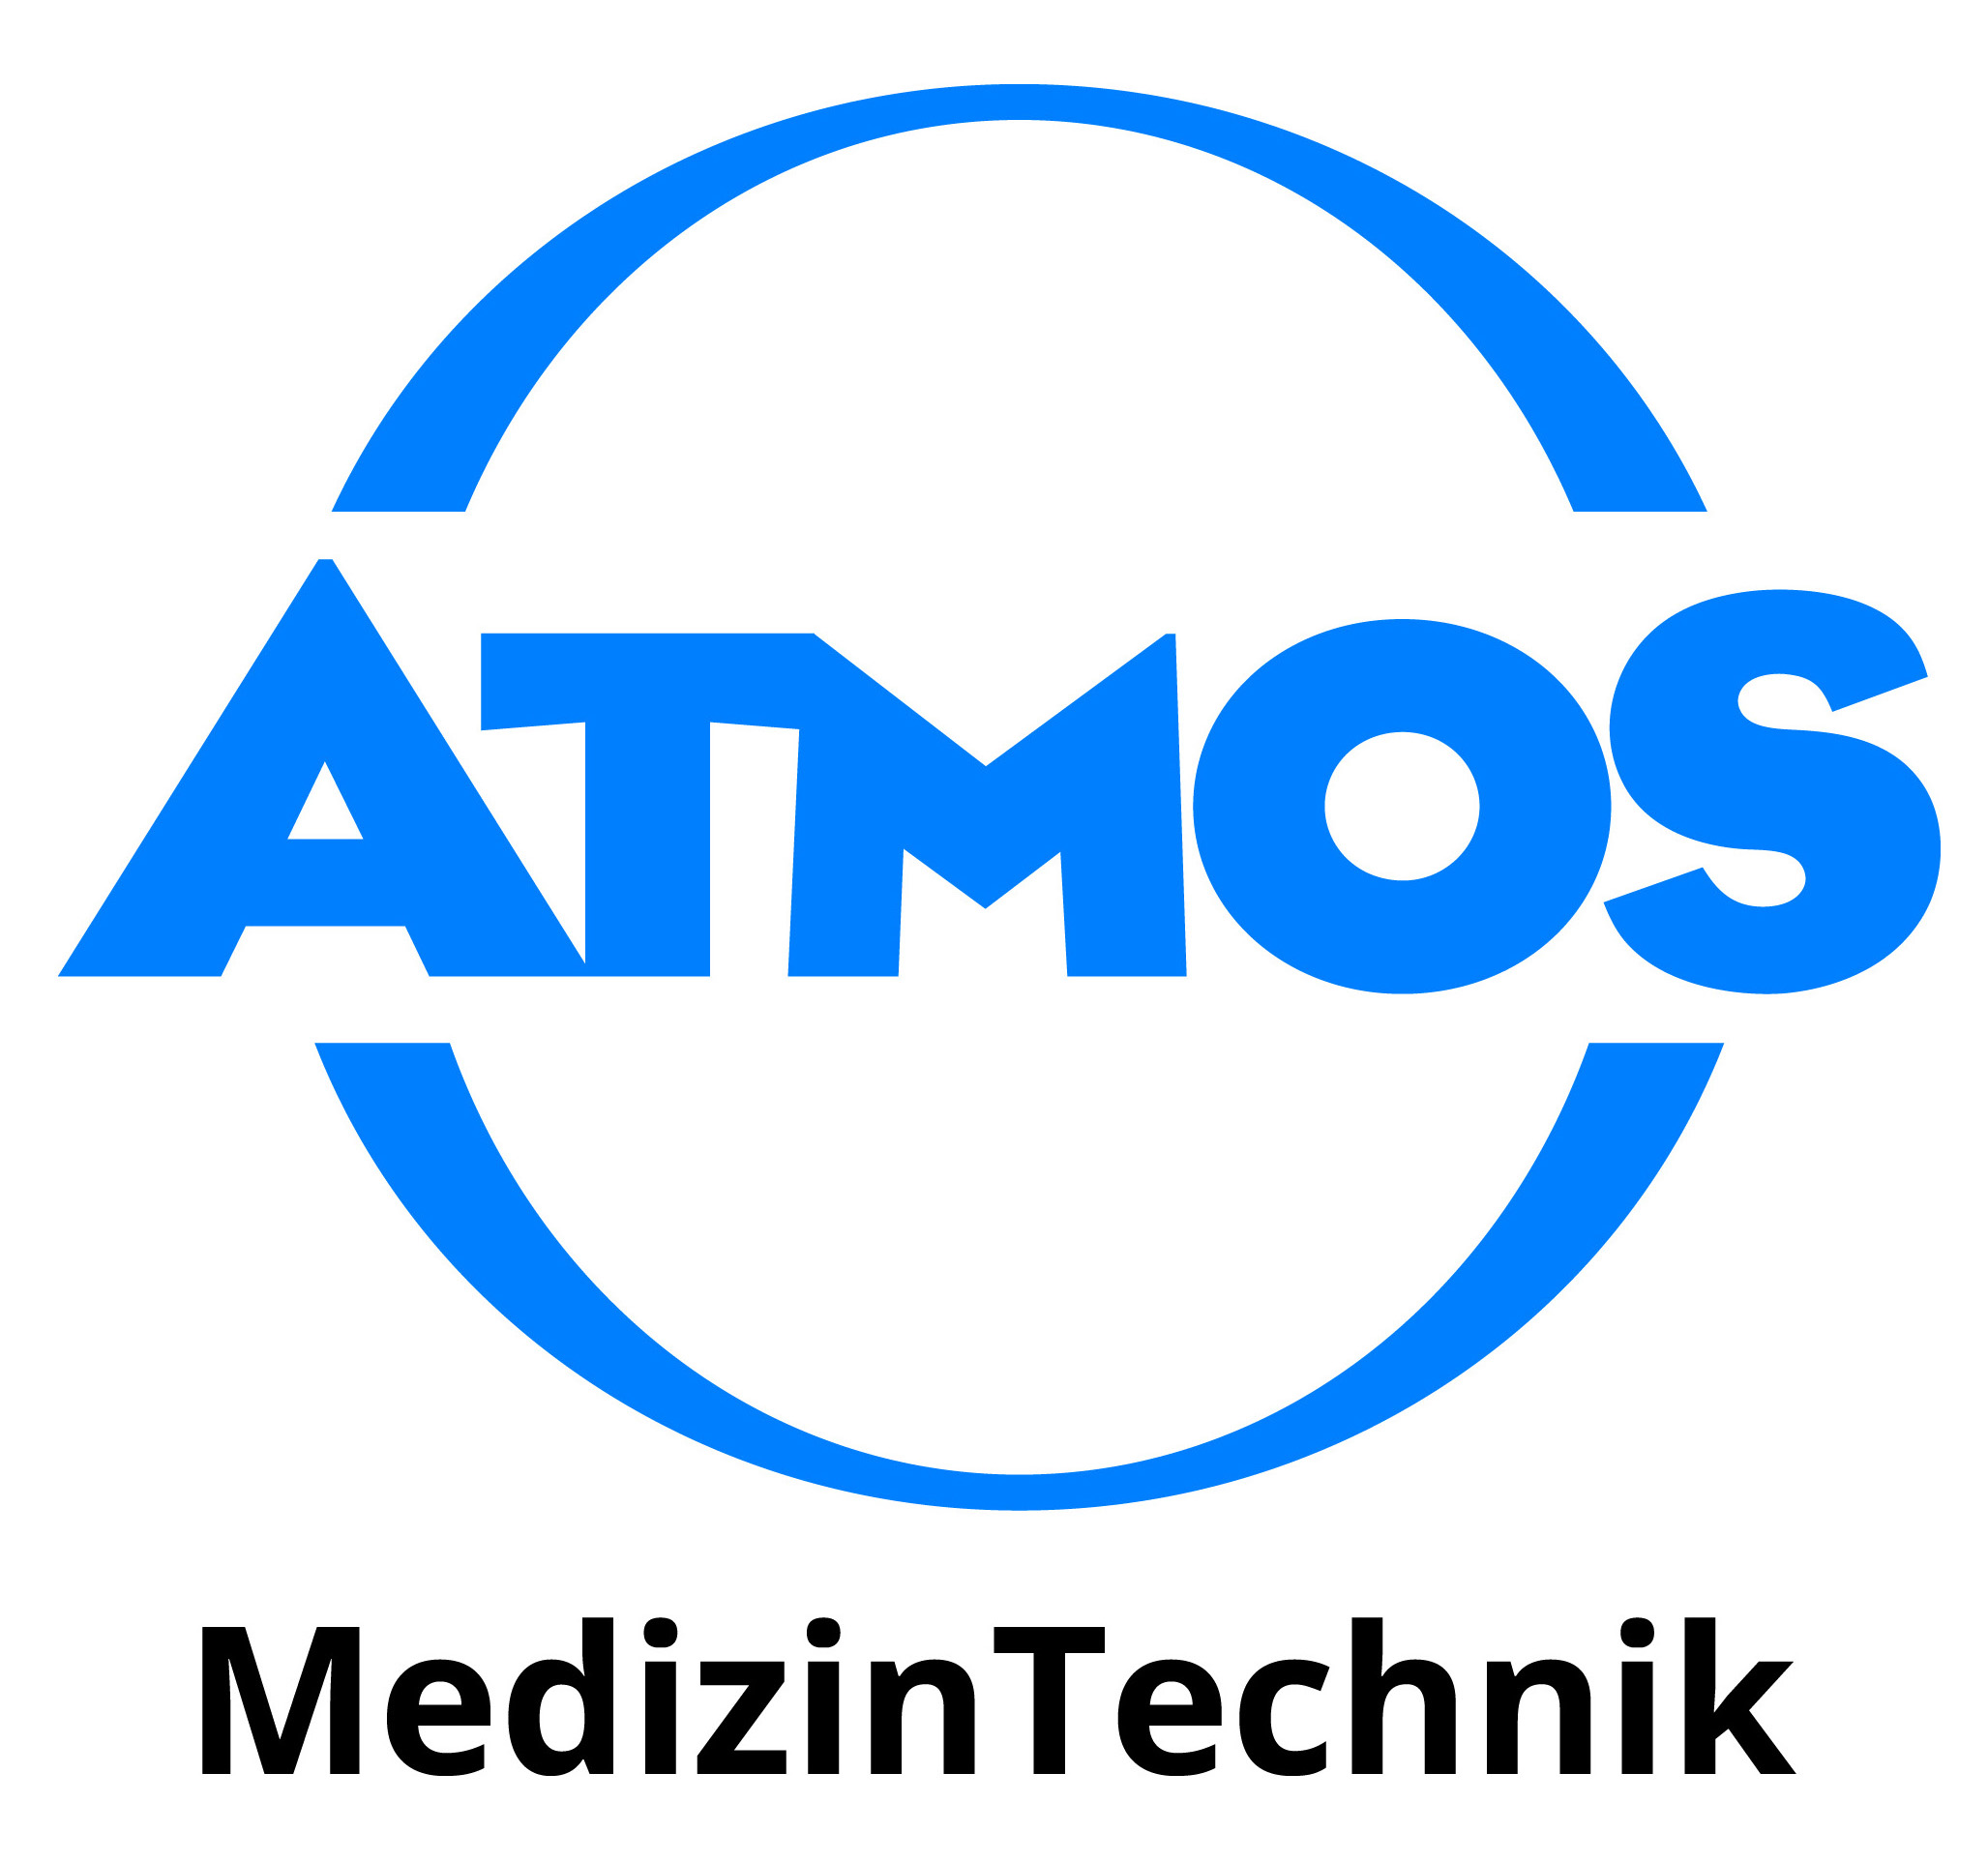 Technischer Projekteinkäufer (m/w/d) - Job Lenzkirch - Karriere bei ATMOS - Post offer form